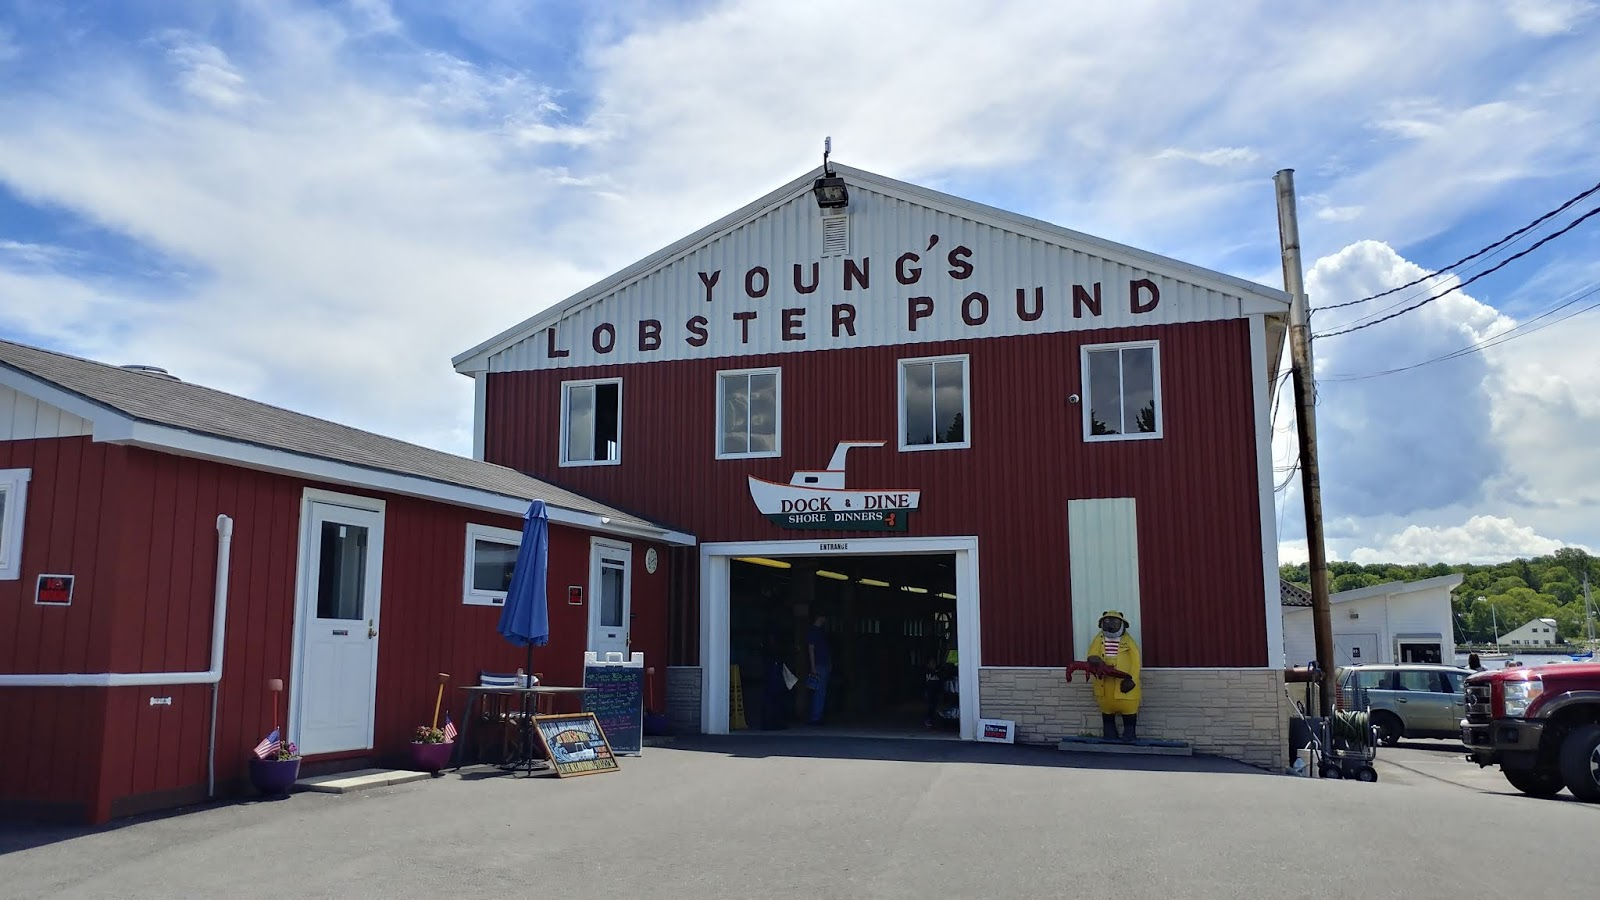 Young's Lobster Pound